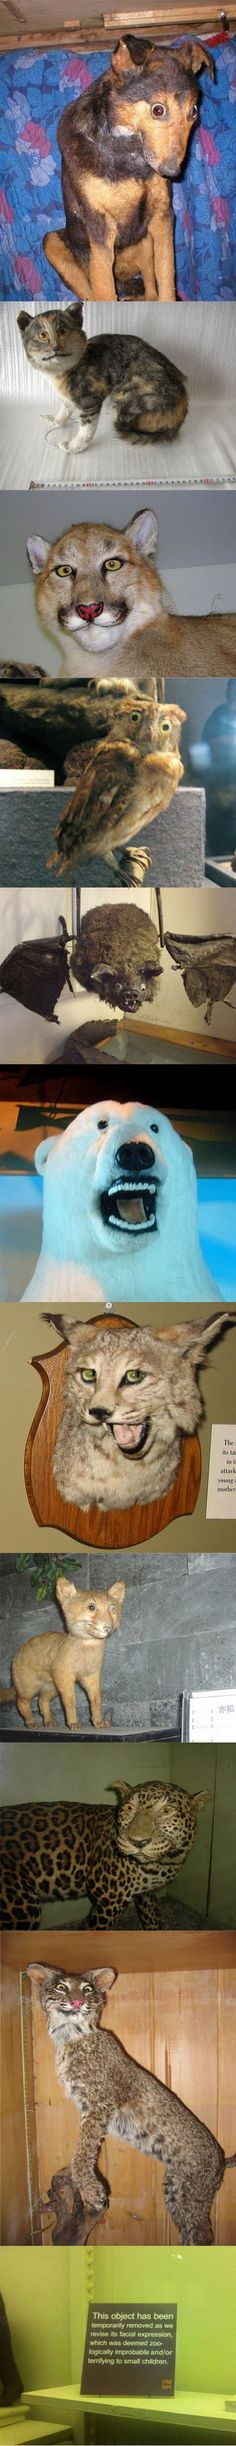 bad taxidermy. I AM CRYING OH MY GOSH THIS IS HILARIOUS